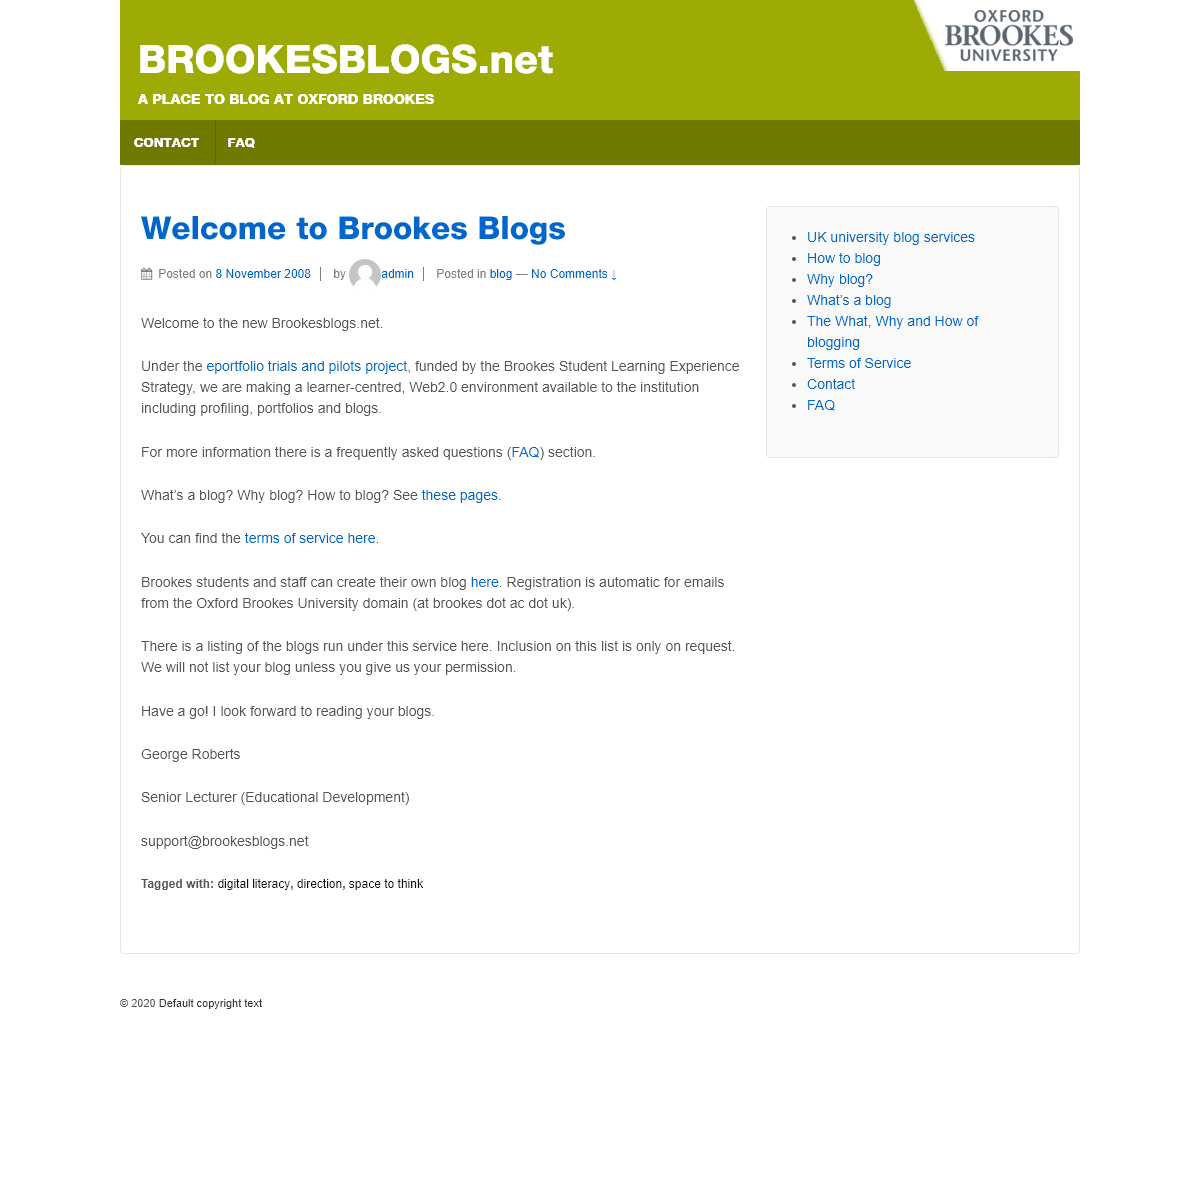 BROOKESBLOGS.net - A Place to Blog at Oxford Brookes